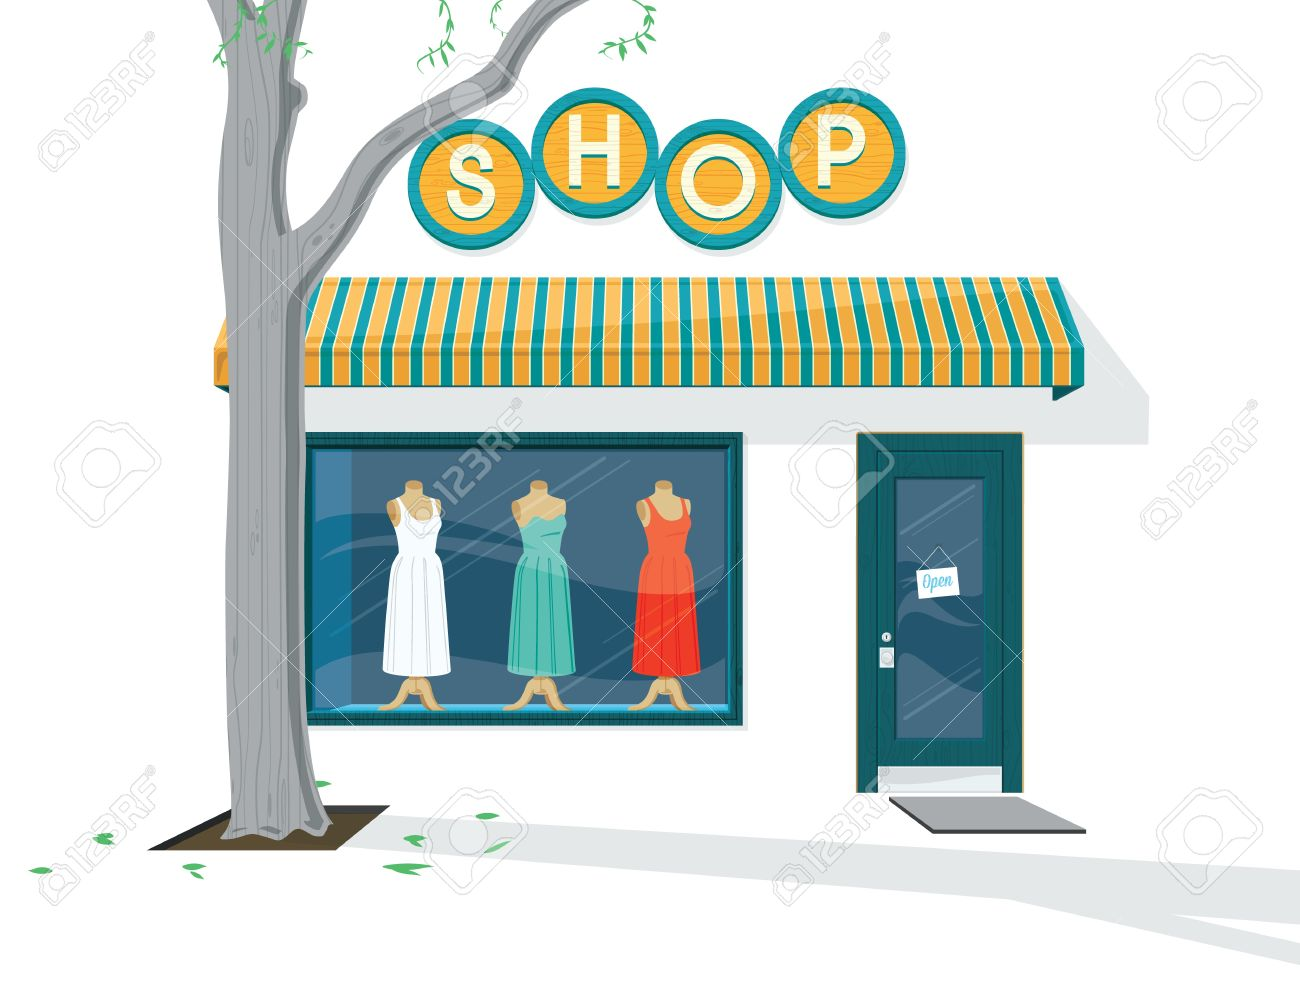 Shop Exterior Illustration Of The Exterior Of A Dress Shop Royalty.